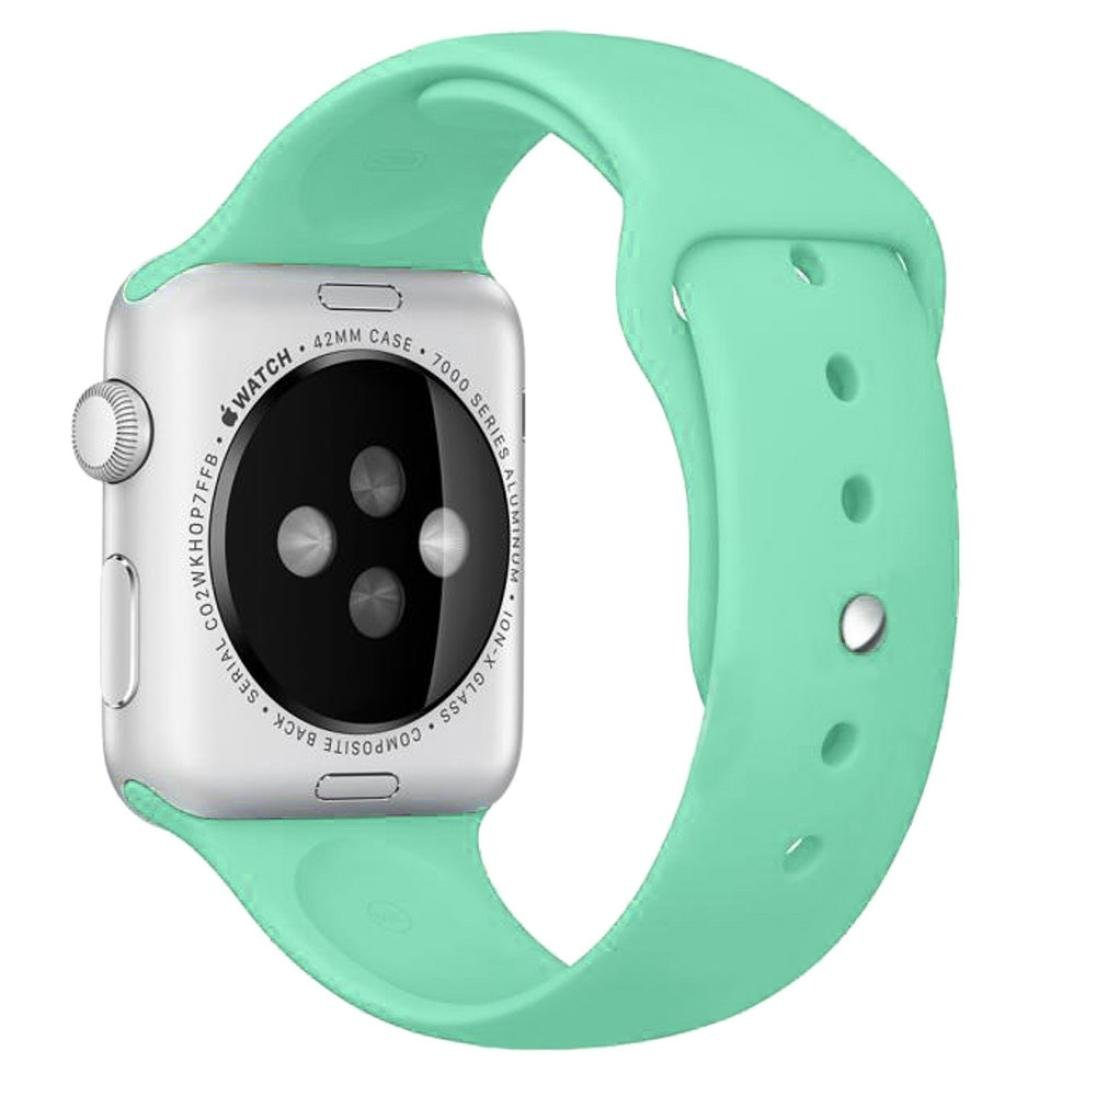 For Apple Watch Band , HP95(TM) Sports Silicone Bracelet Strap Band for Apple Watch 38mm/ 42mm all Model, Replacement, Adjustable Watch Band ( 38mm , Green)